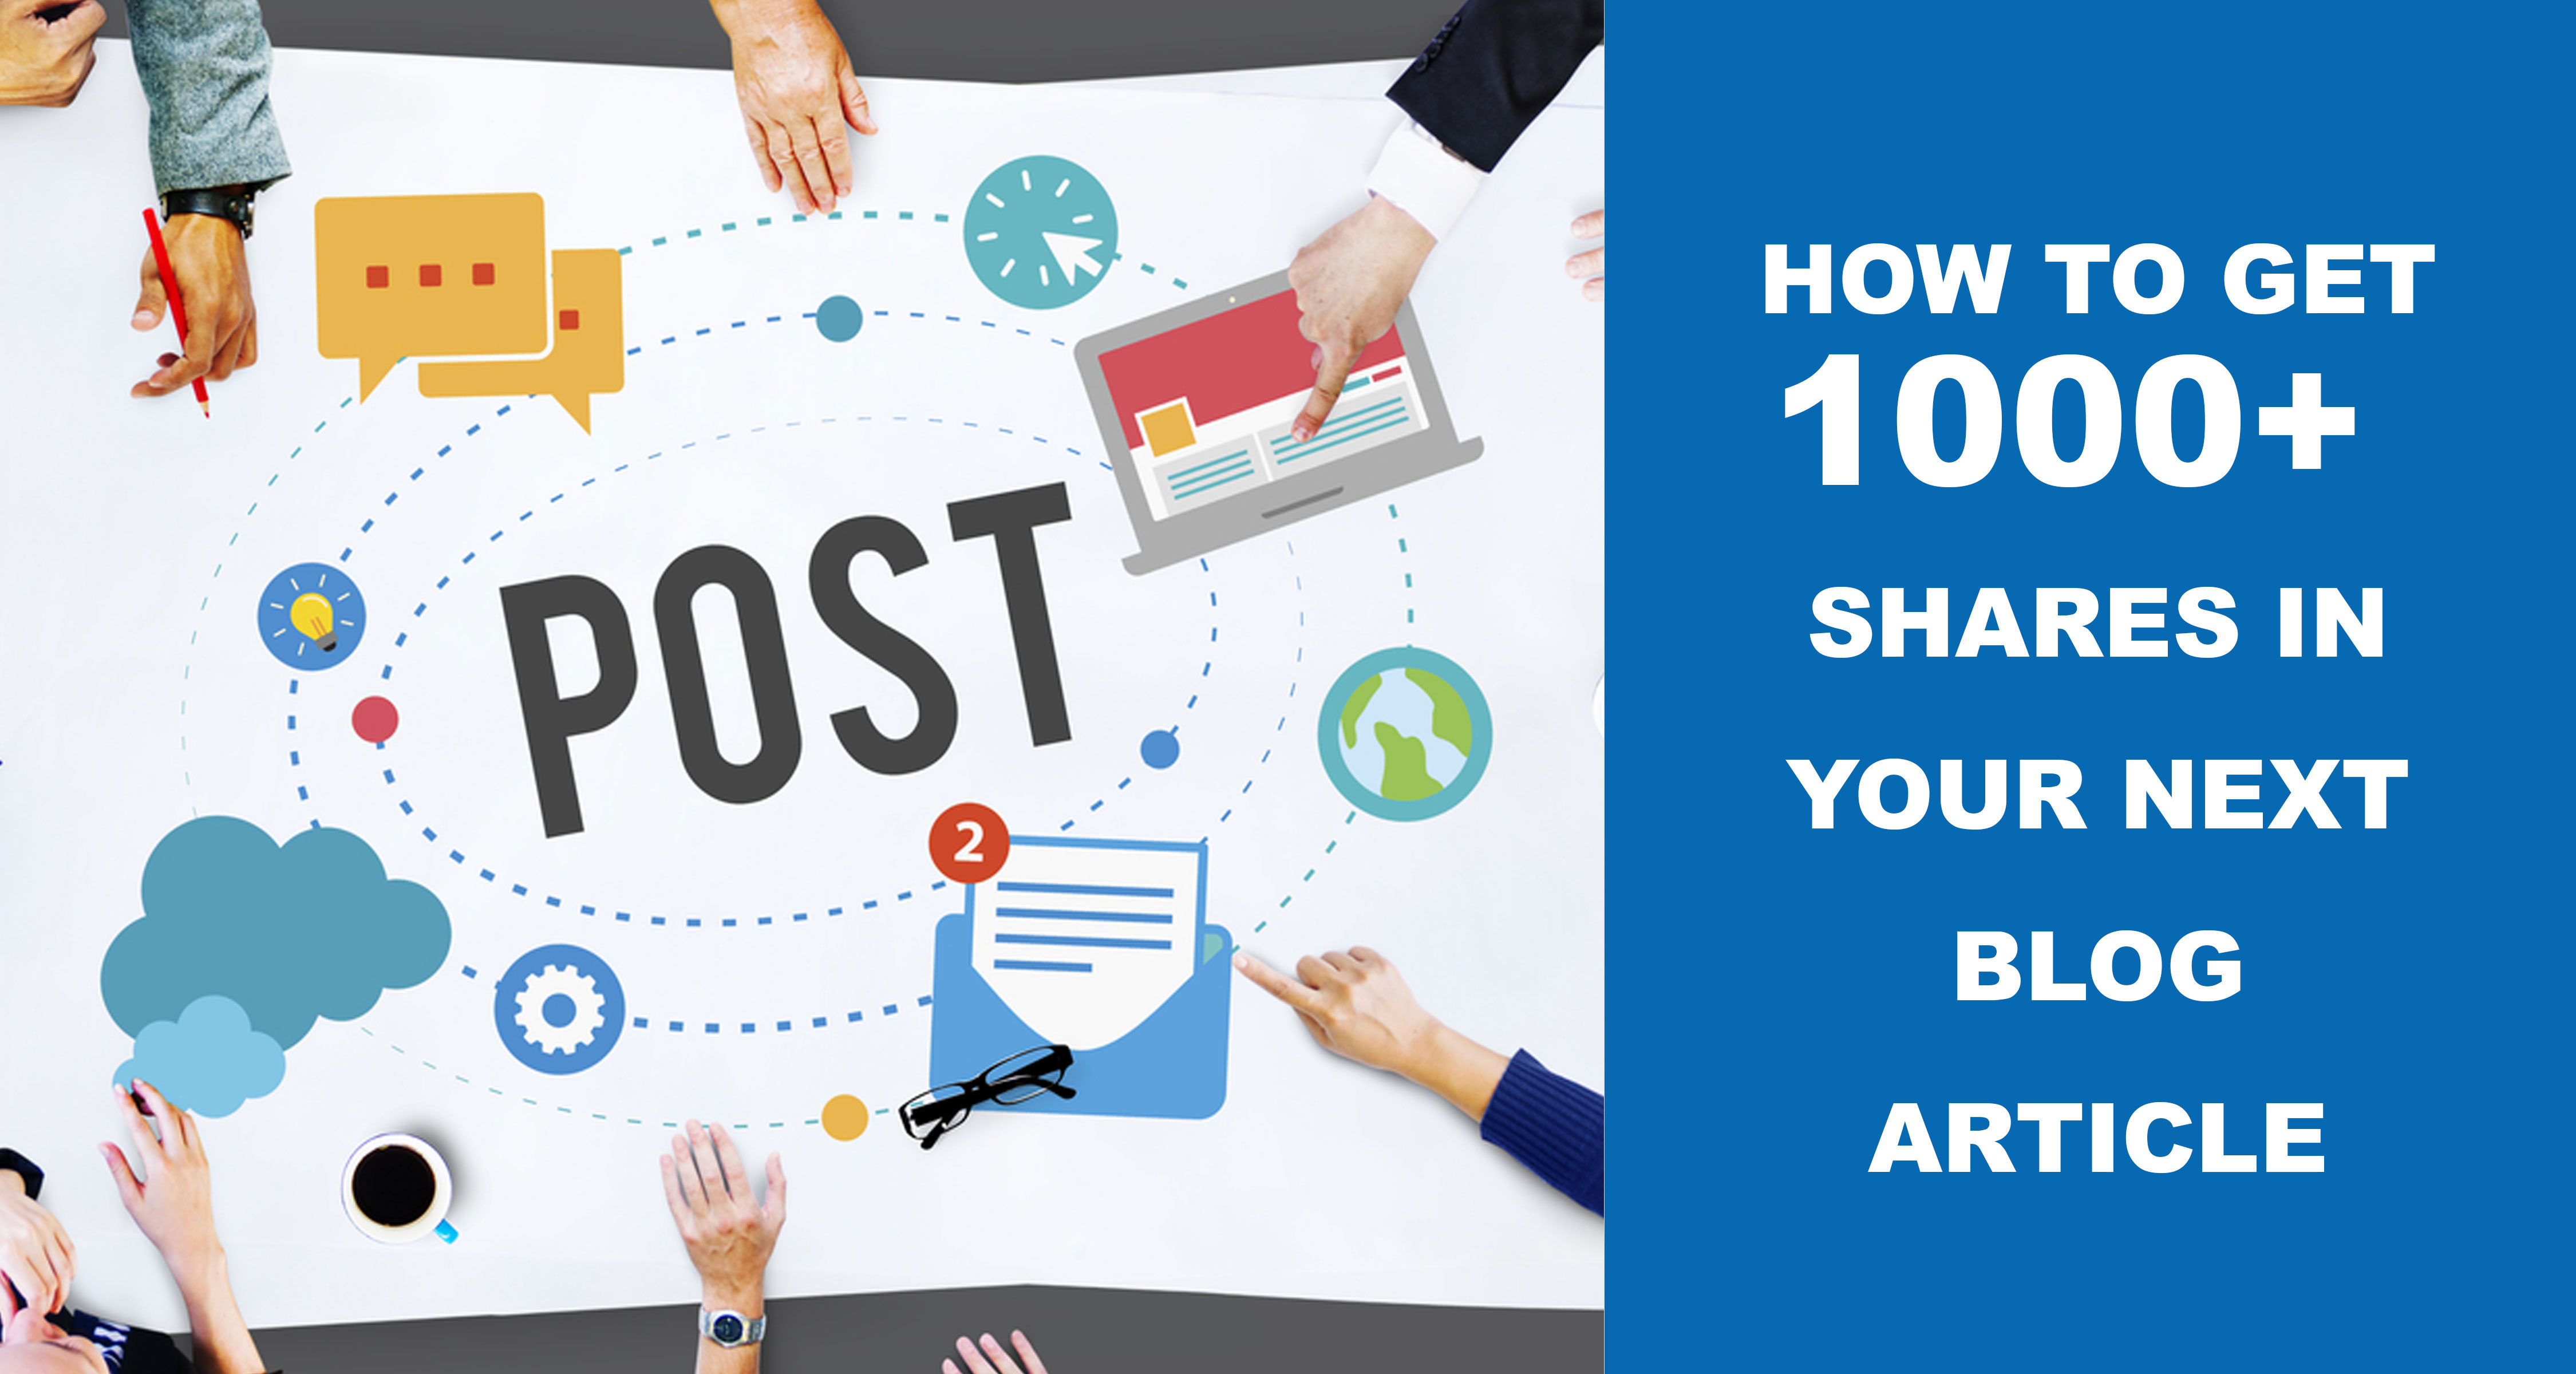 How-To-Get-1000+-Shares-In-Your-Next-Blog-Article